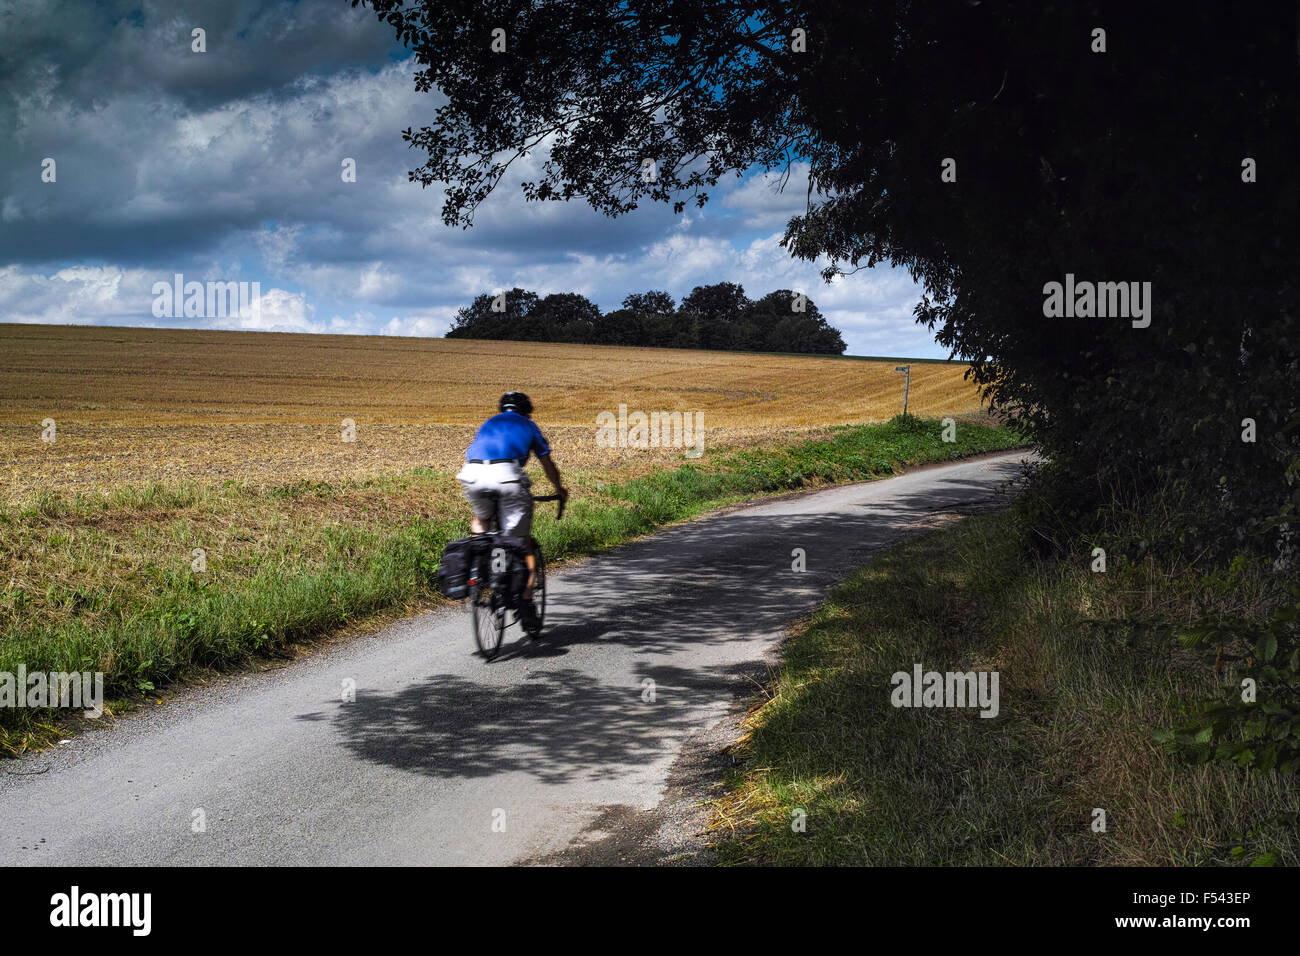 An English country lane in Hertfordshire in front of a field of ripening wheat and with a leisure cyclist passing - Stock Image